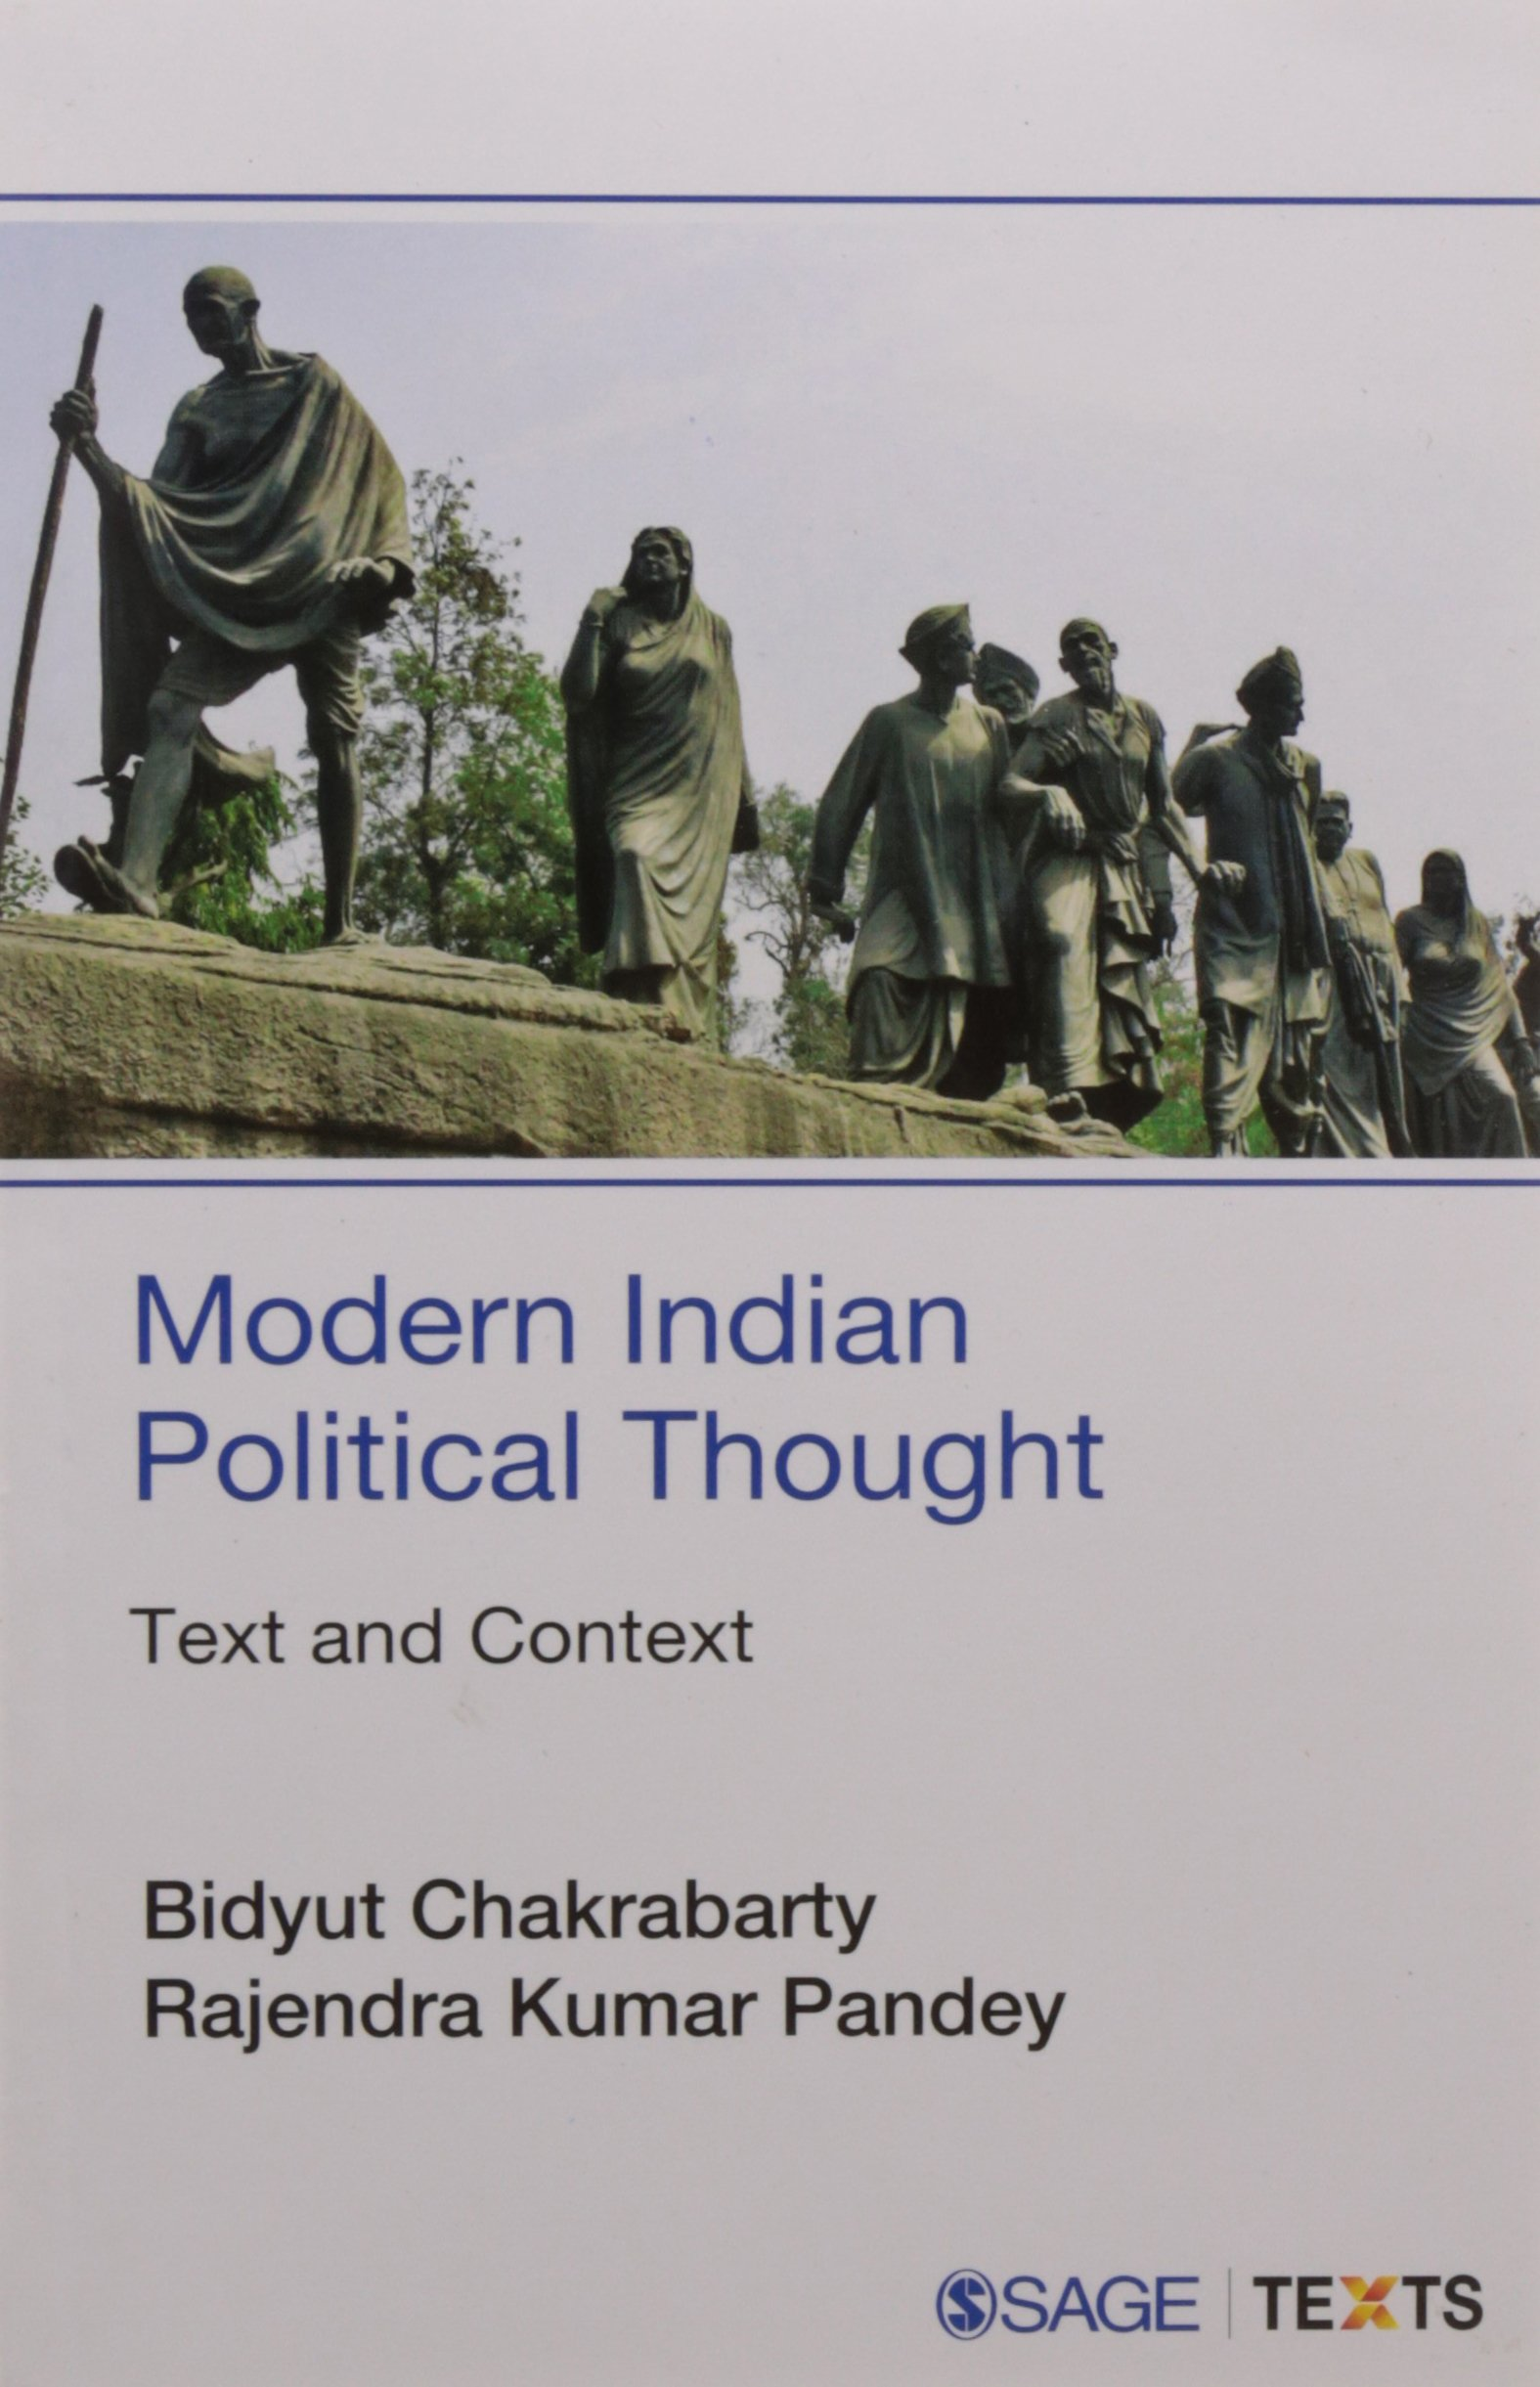 Modern Indian Political Thought: Text and Context (SAGE Texts)